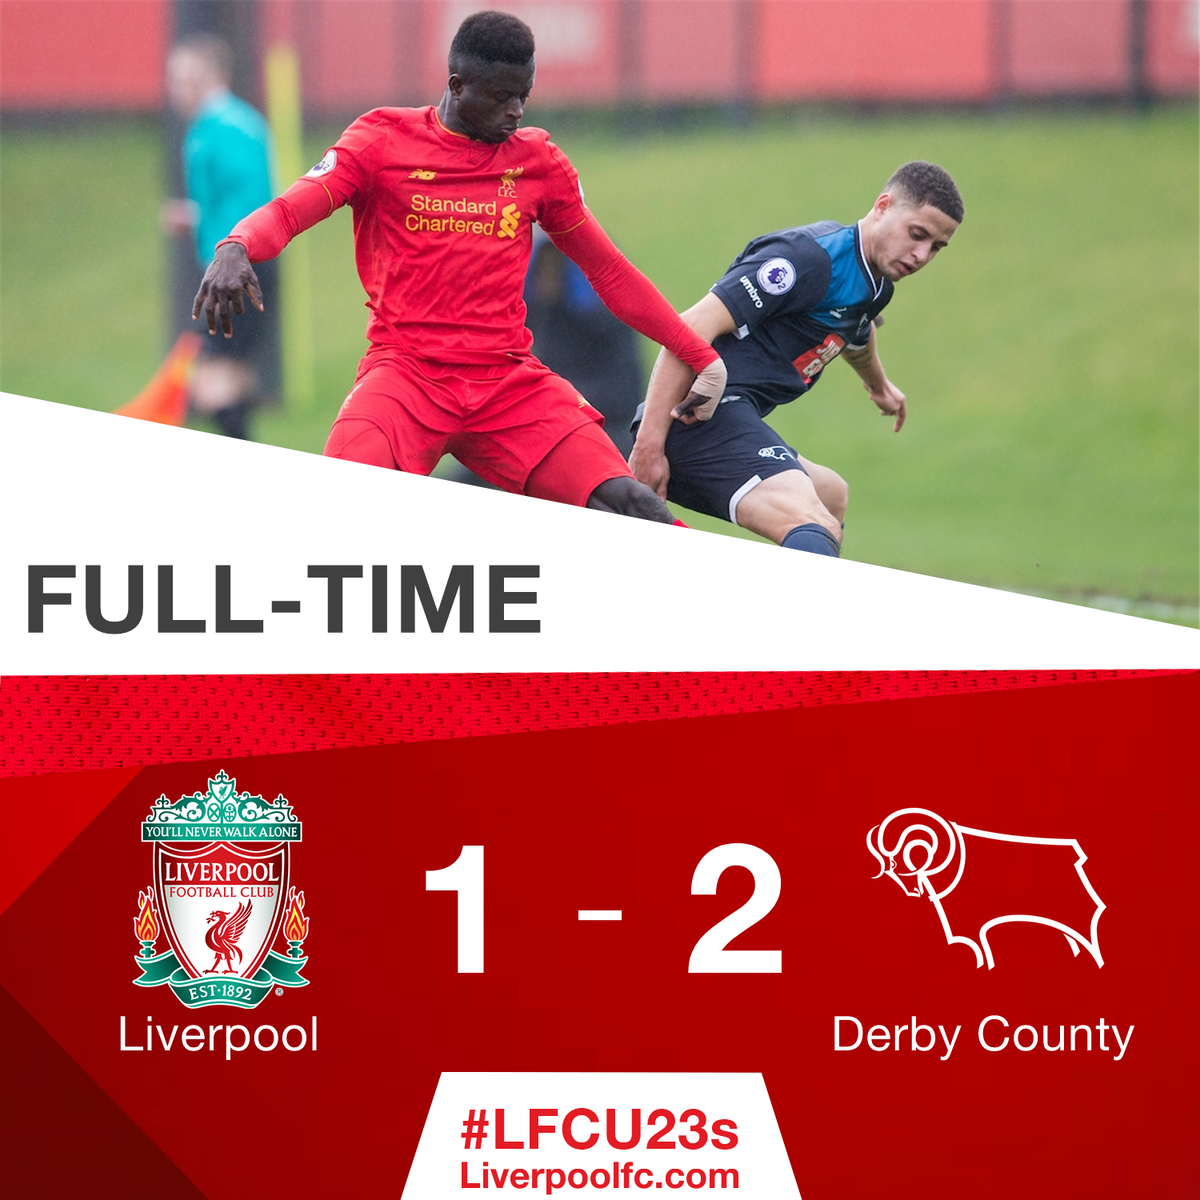 ⏱ A disappointing afternoon for #LFCU23s... https://t.co/z42v3rBLTq